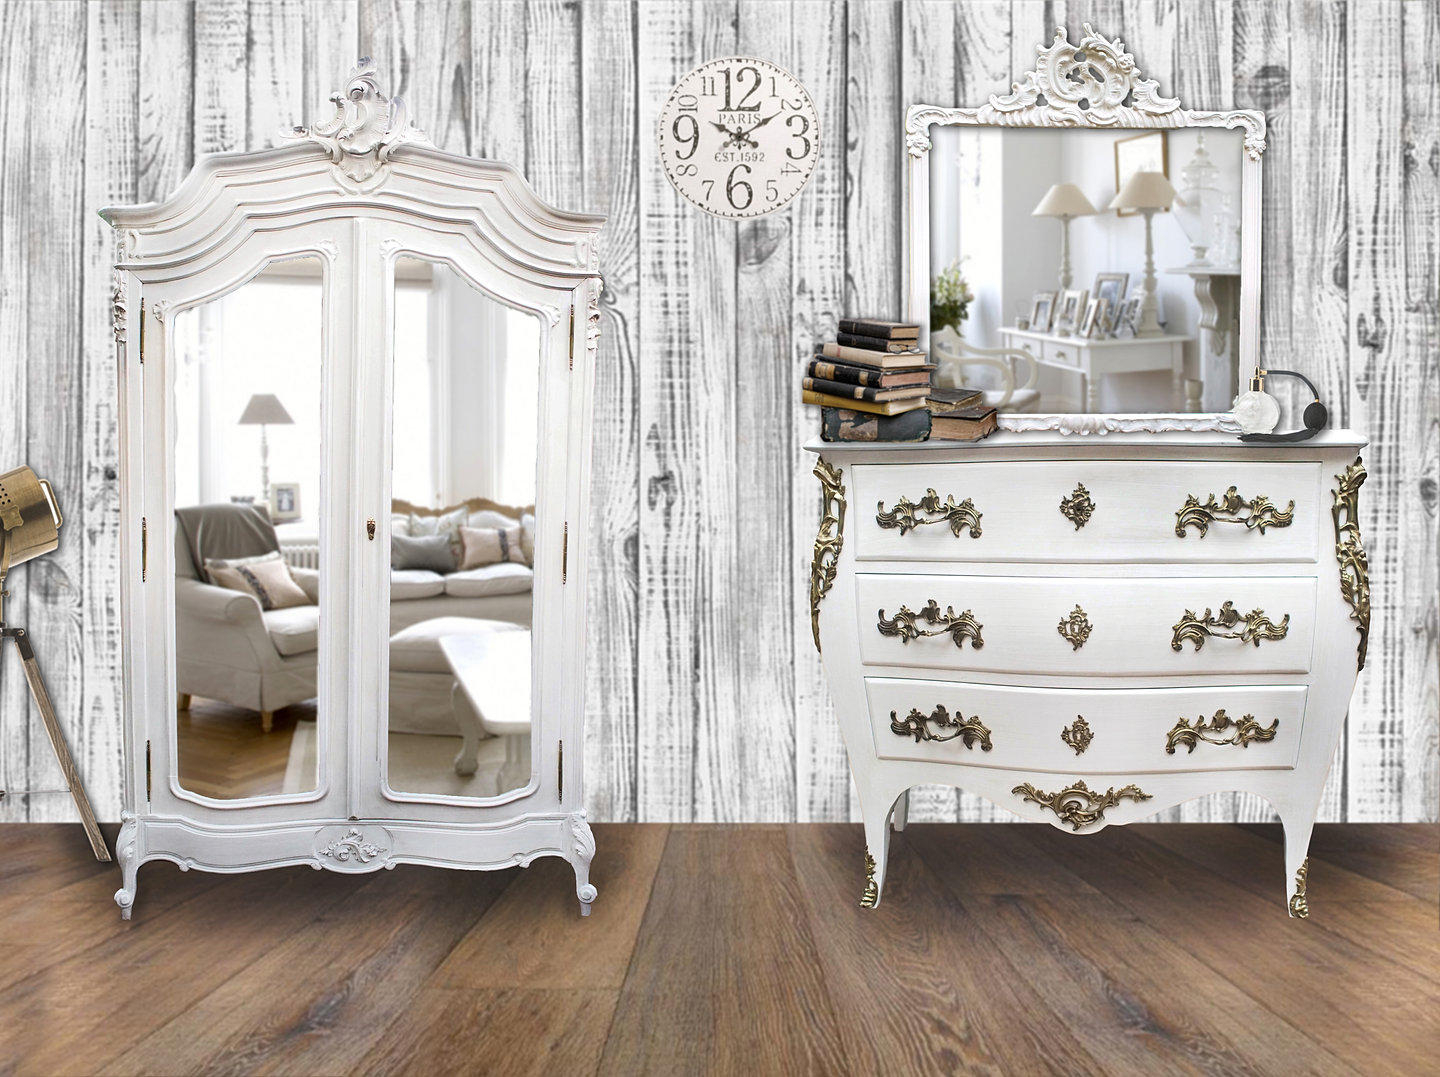 les meubles patin s paris alben168 louis xv baroque. Black Bedroom Furniture Sets. Home Design Ideas